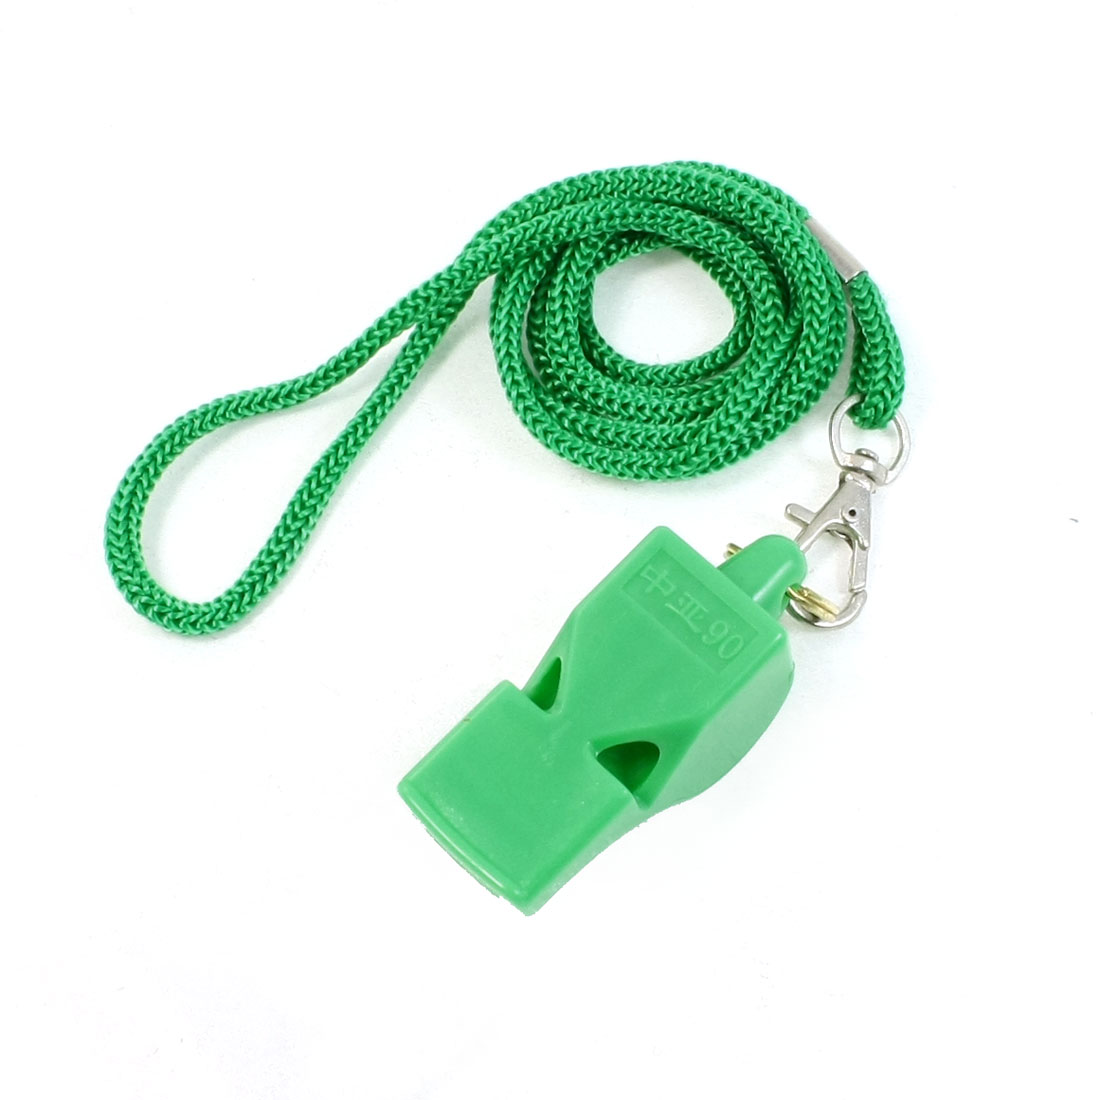 Outdoor Activities Portable Plastic Referee Whistle Green w Lanyard